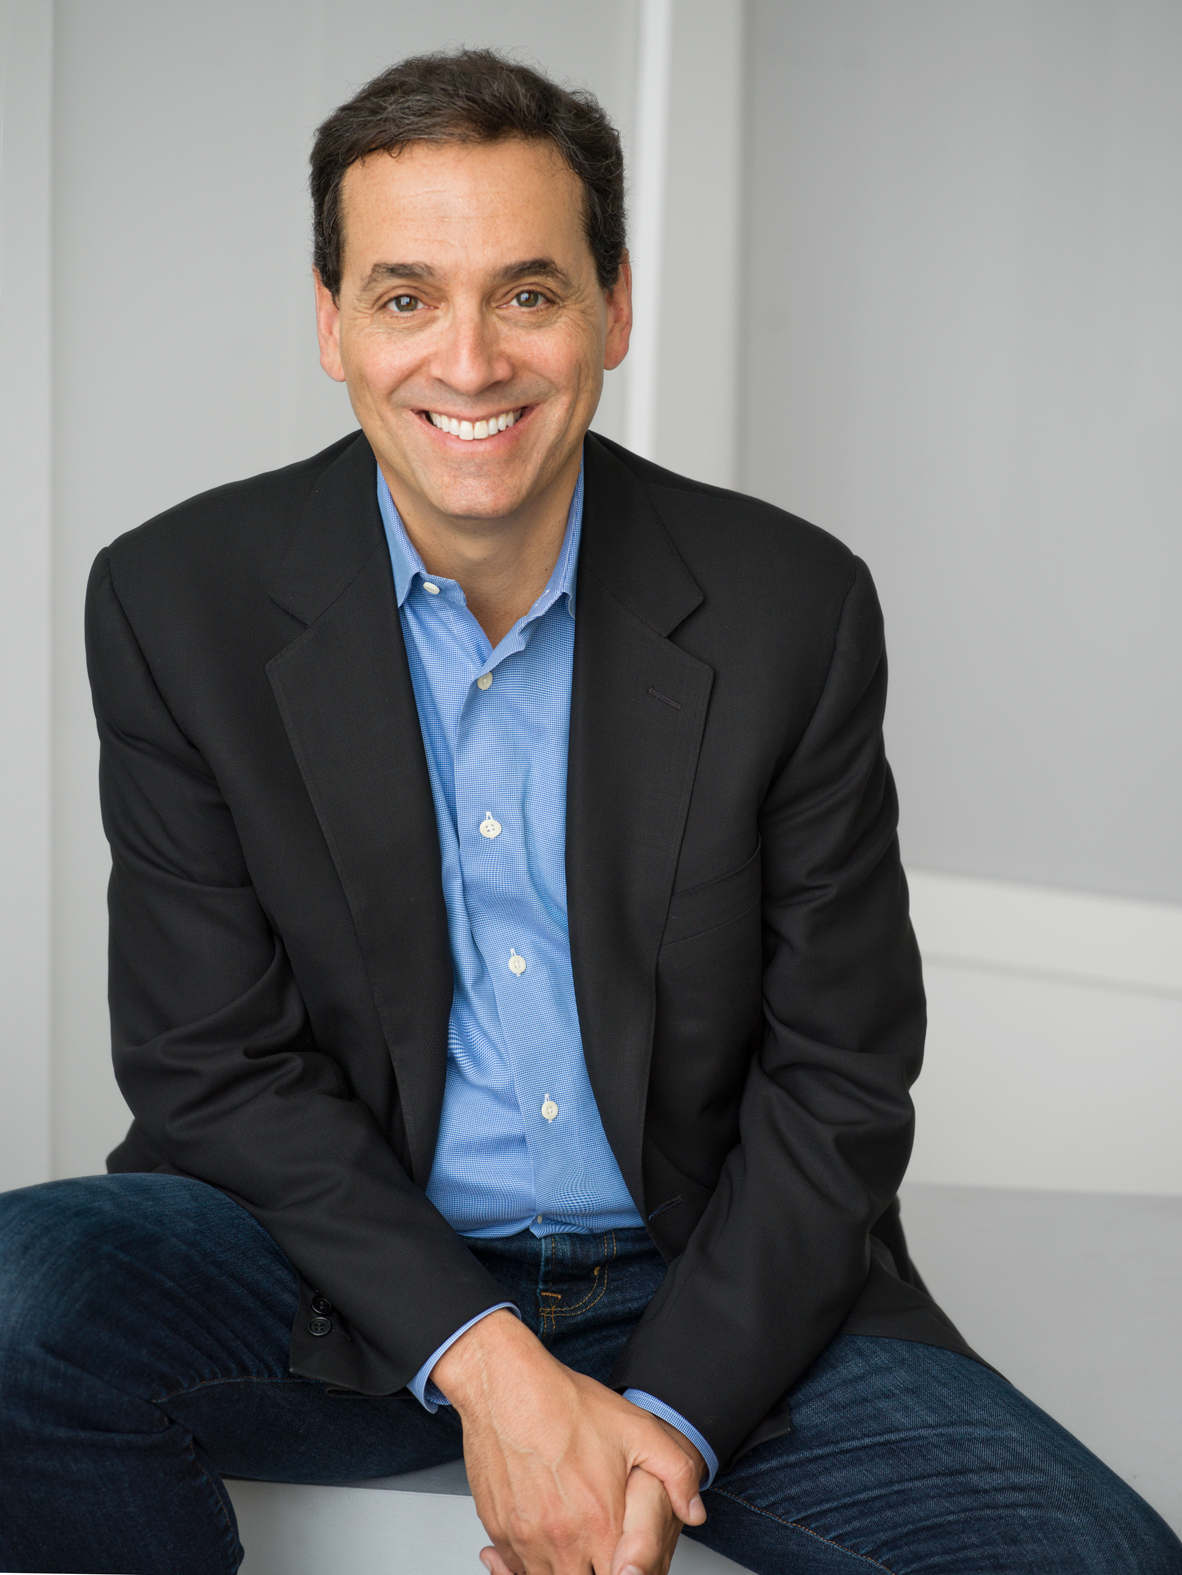 The 6 essential lessons of a satisfying, productive career | Daniel H. Pink